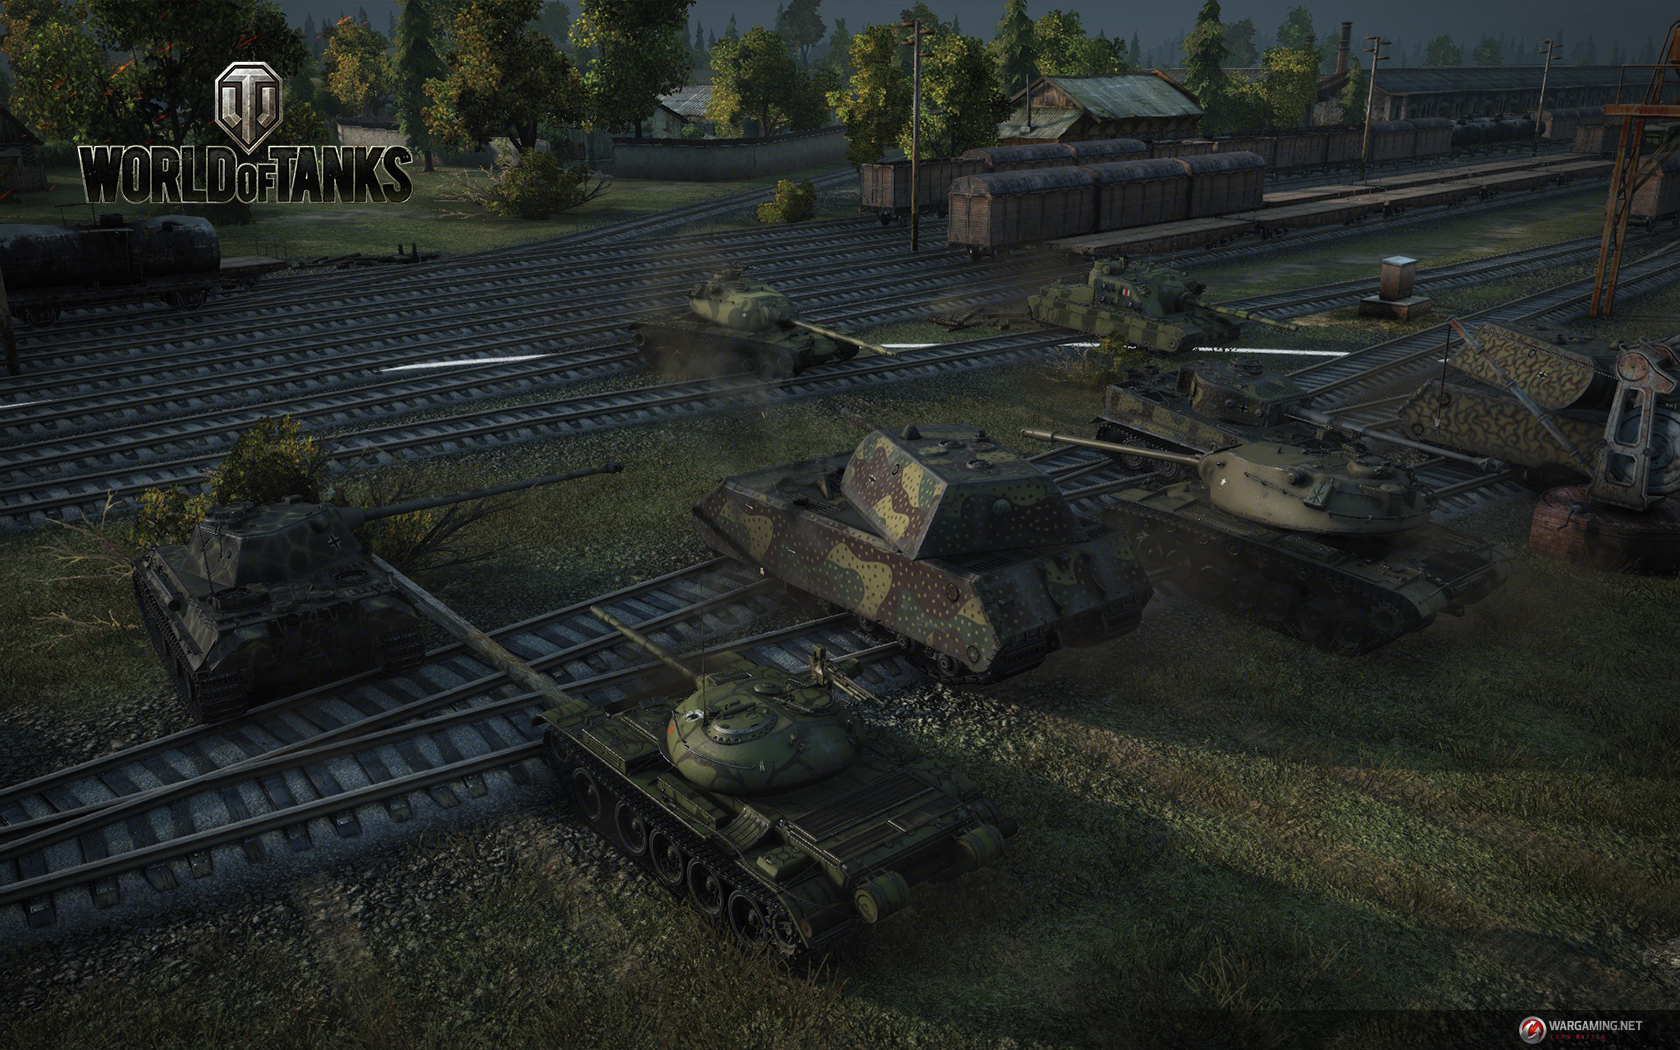 Цена танков в world of tanks в рублях